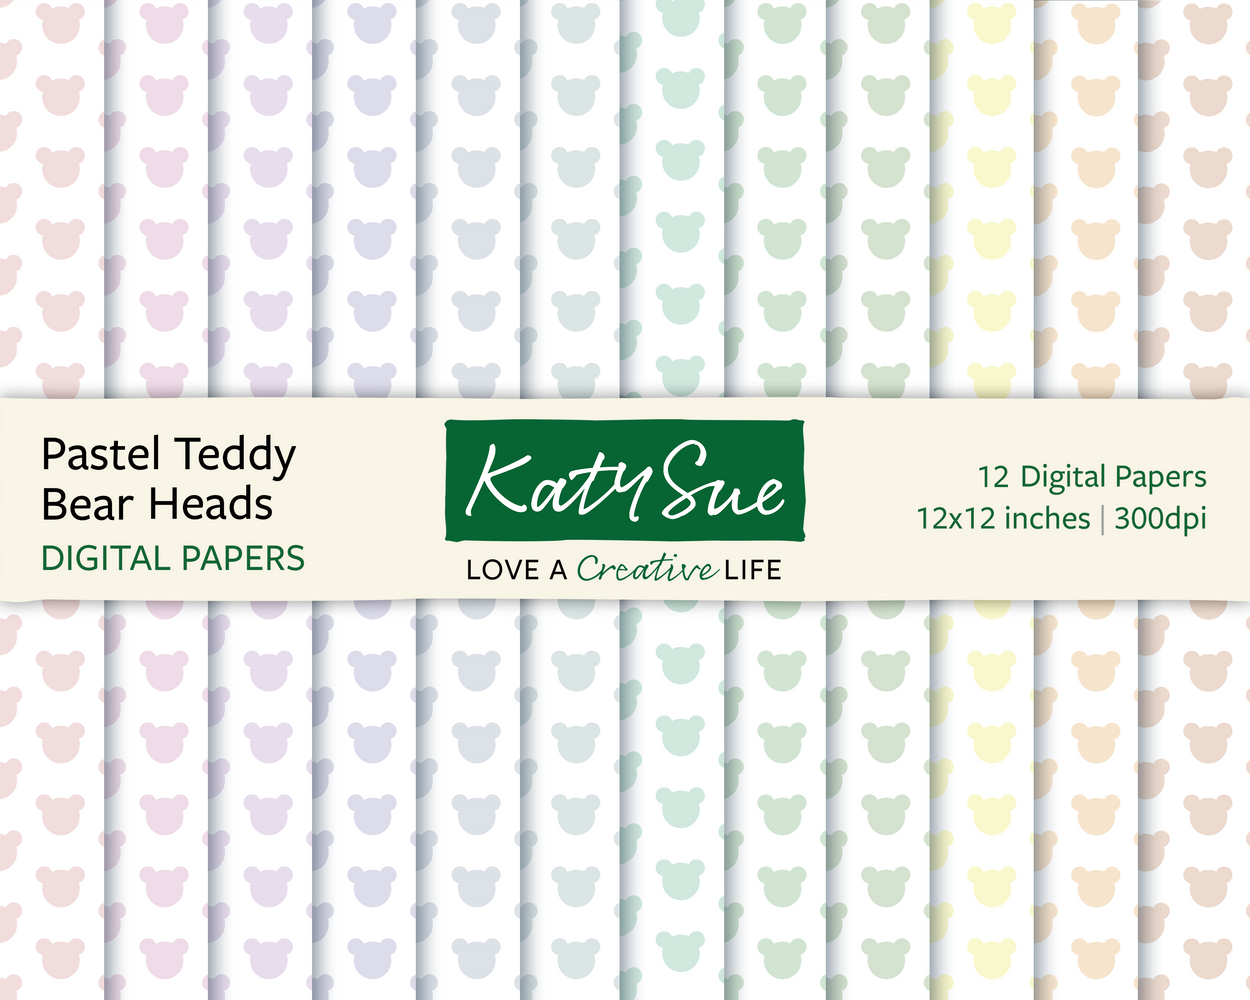 Pastel Teddy Bear Heads | 12x12 Digital Papers